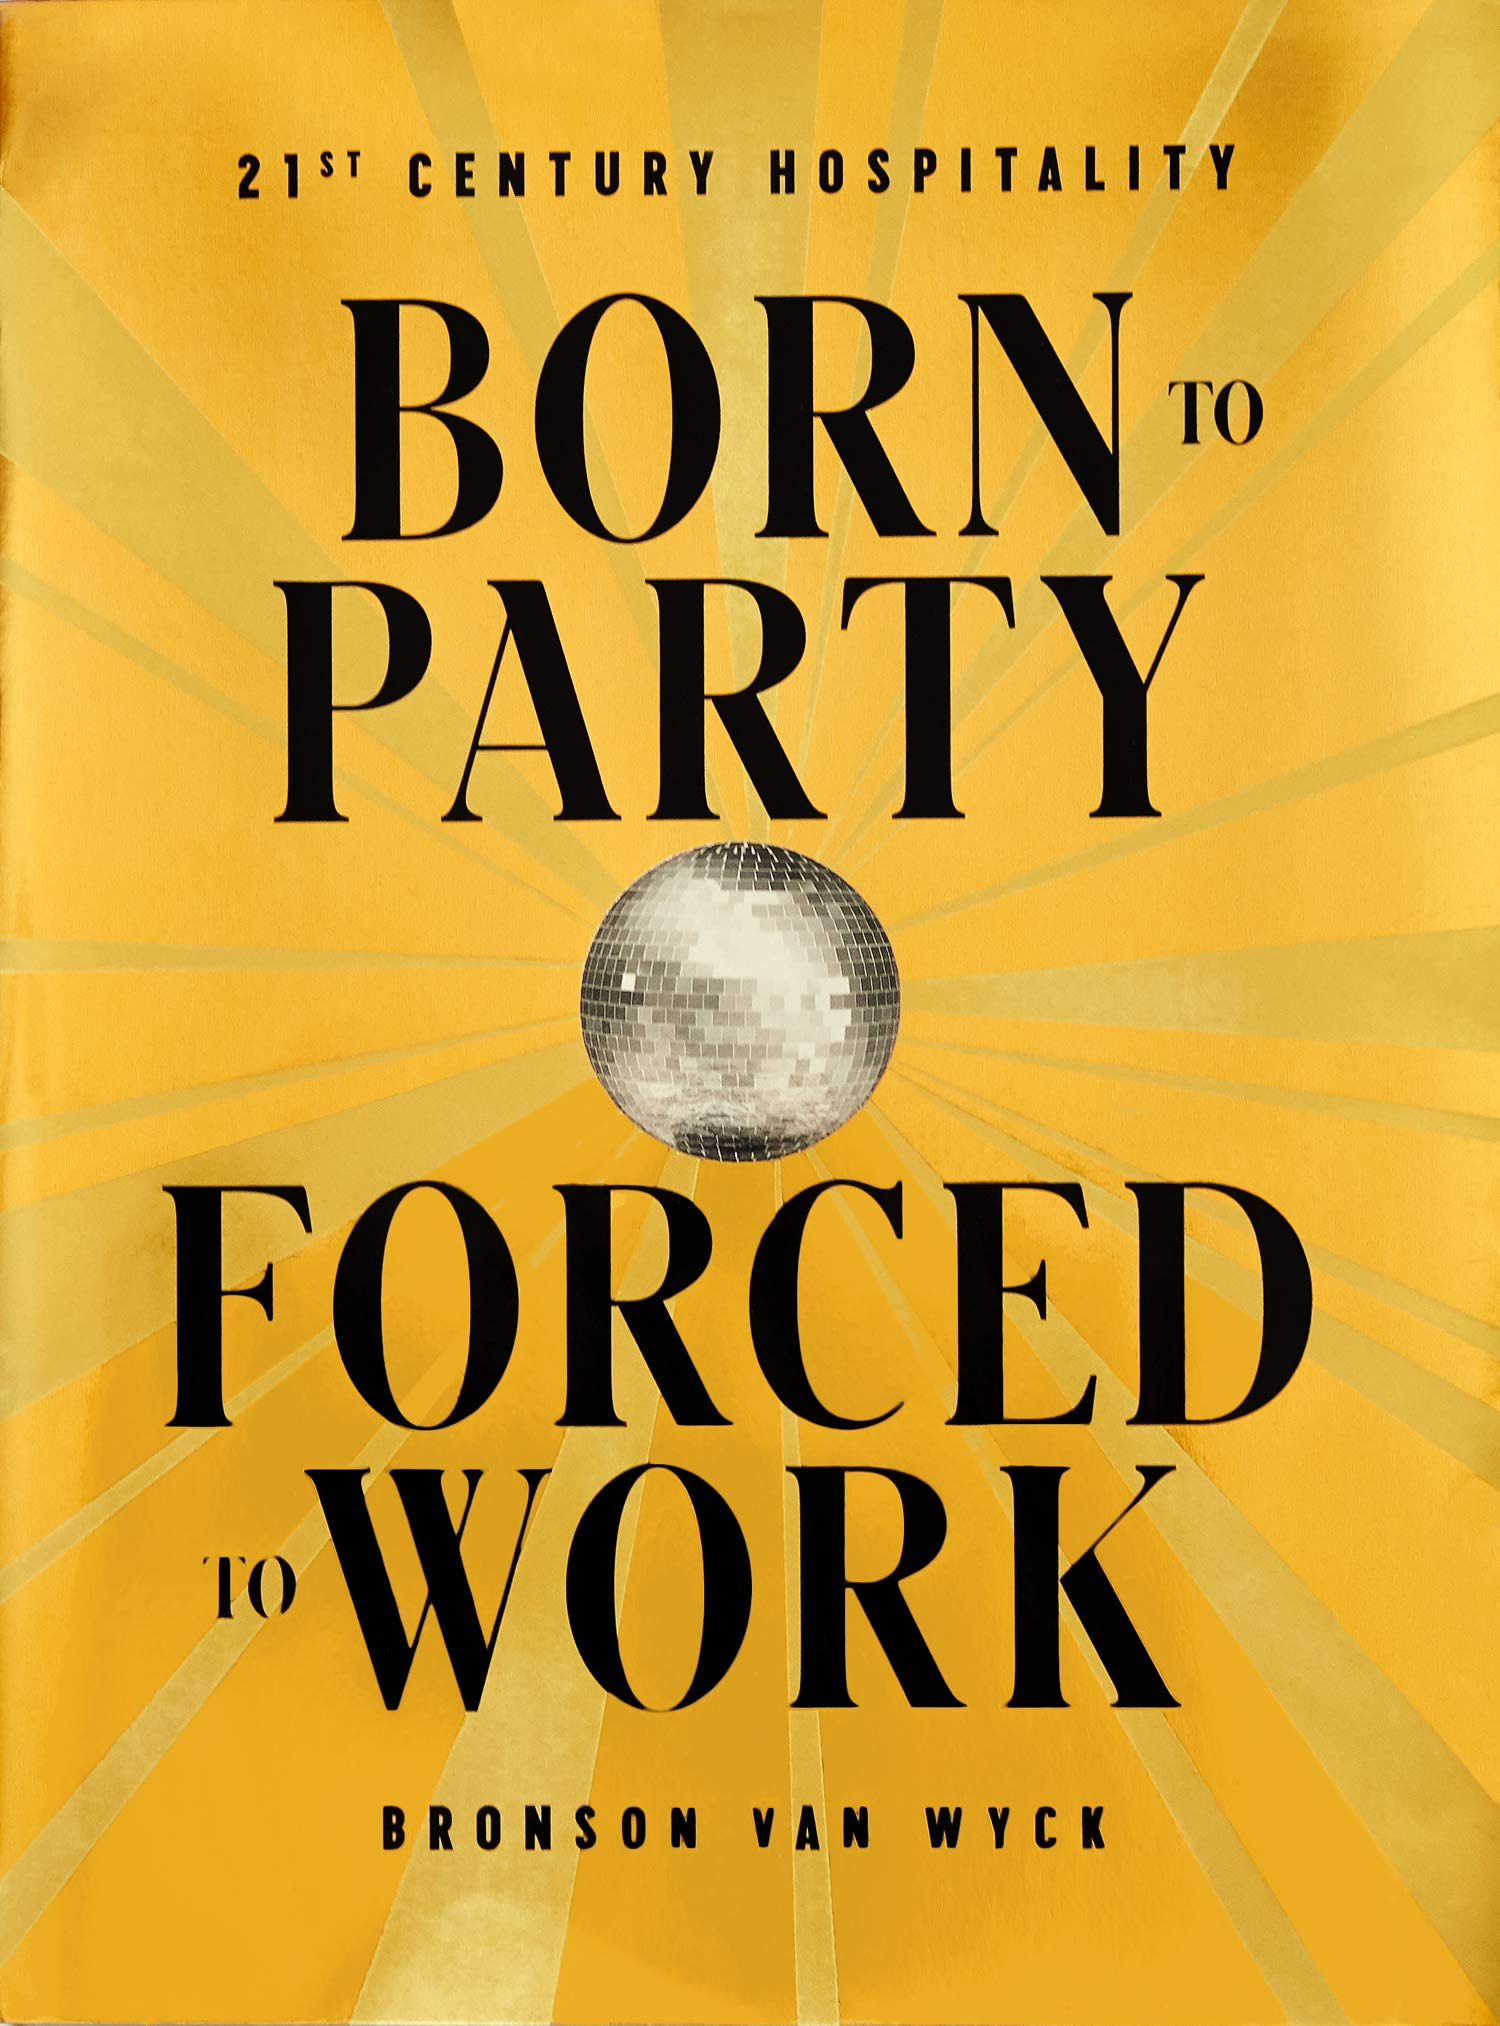 Born to Party Forced to Work: 21st Century Hospitality